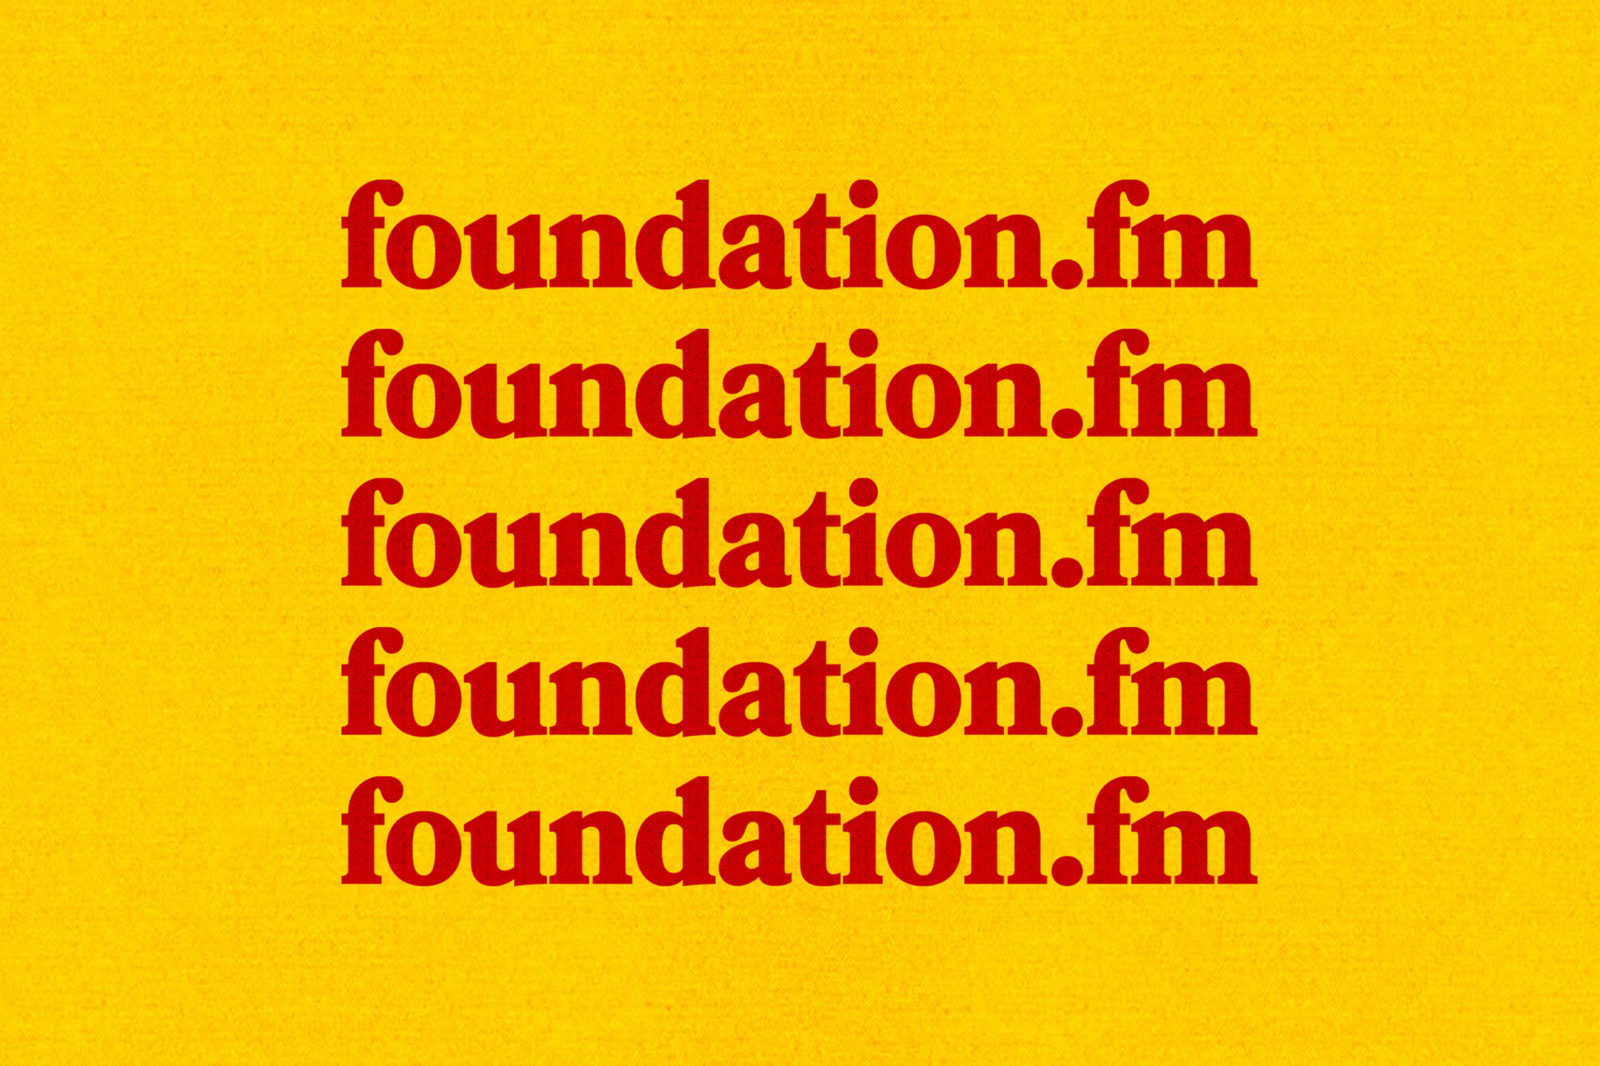 foundation.fm and Refuge Worldwide combine for takeover